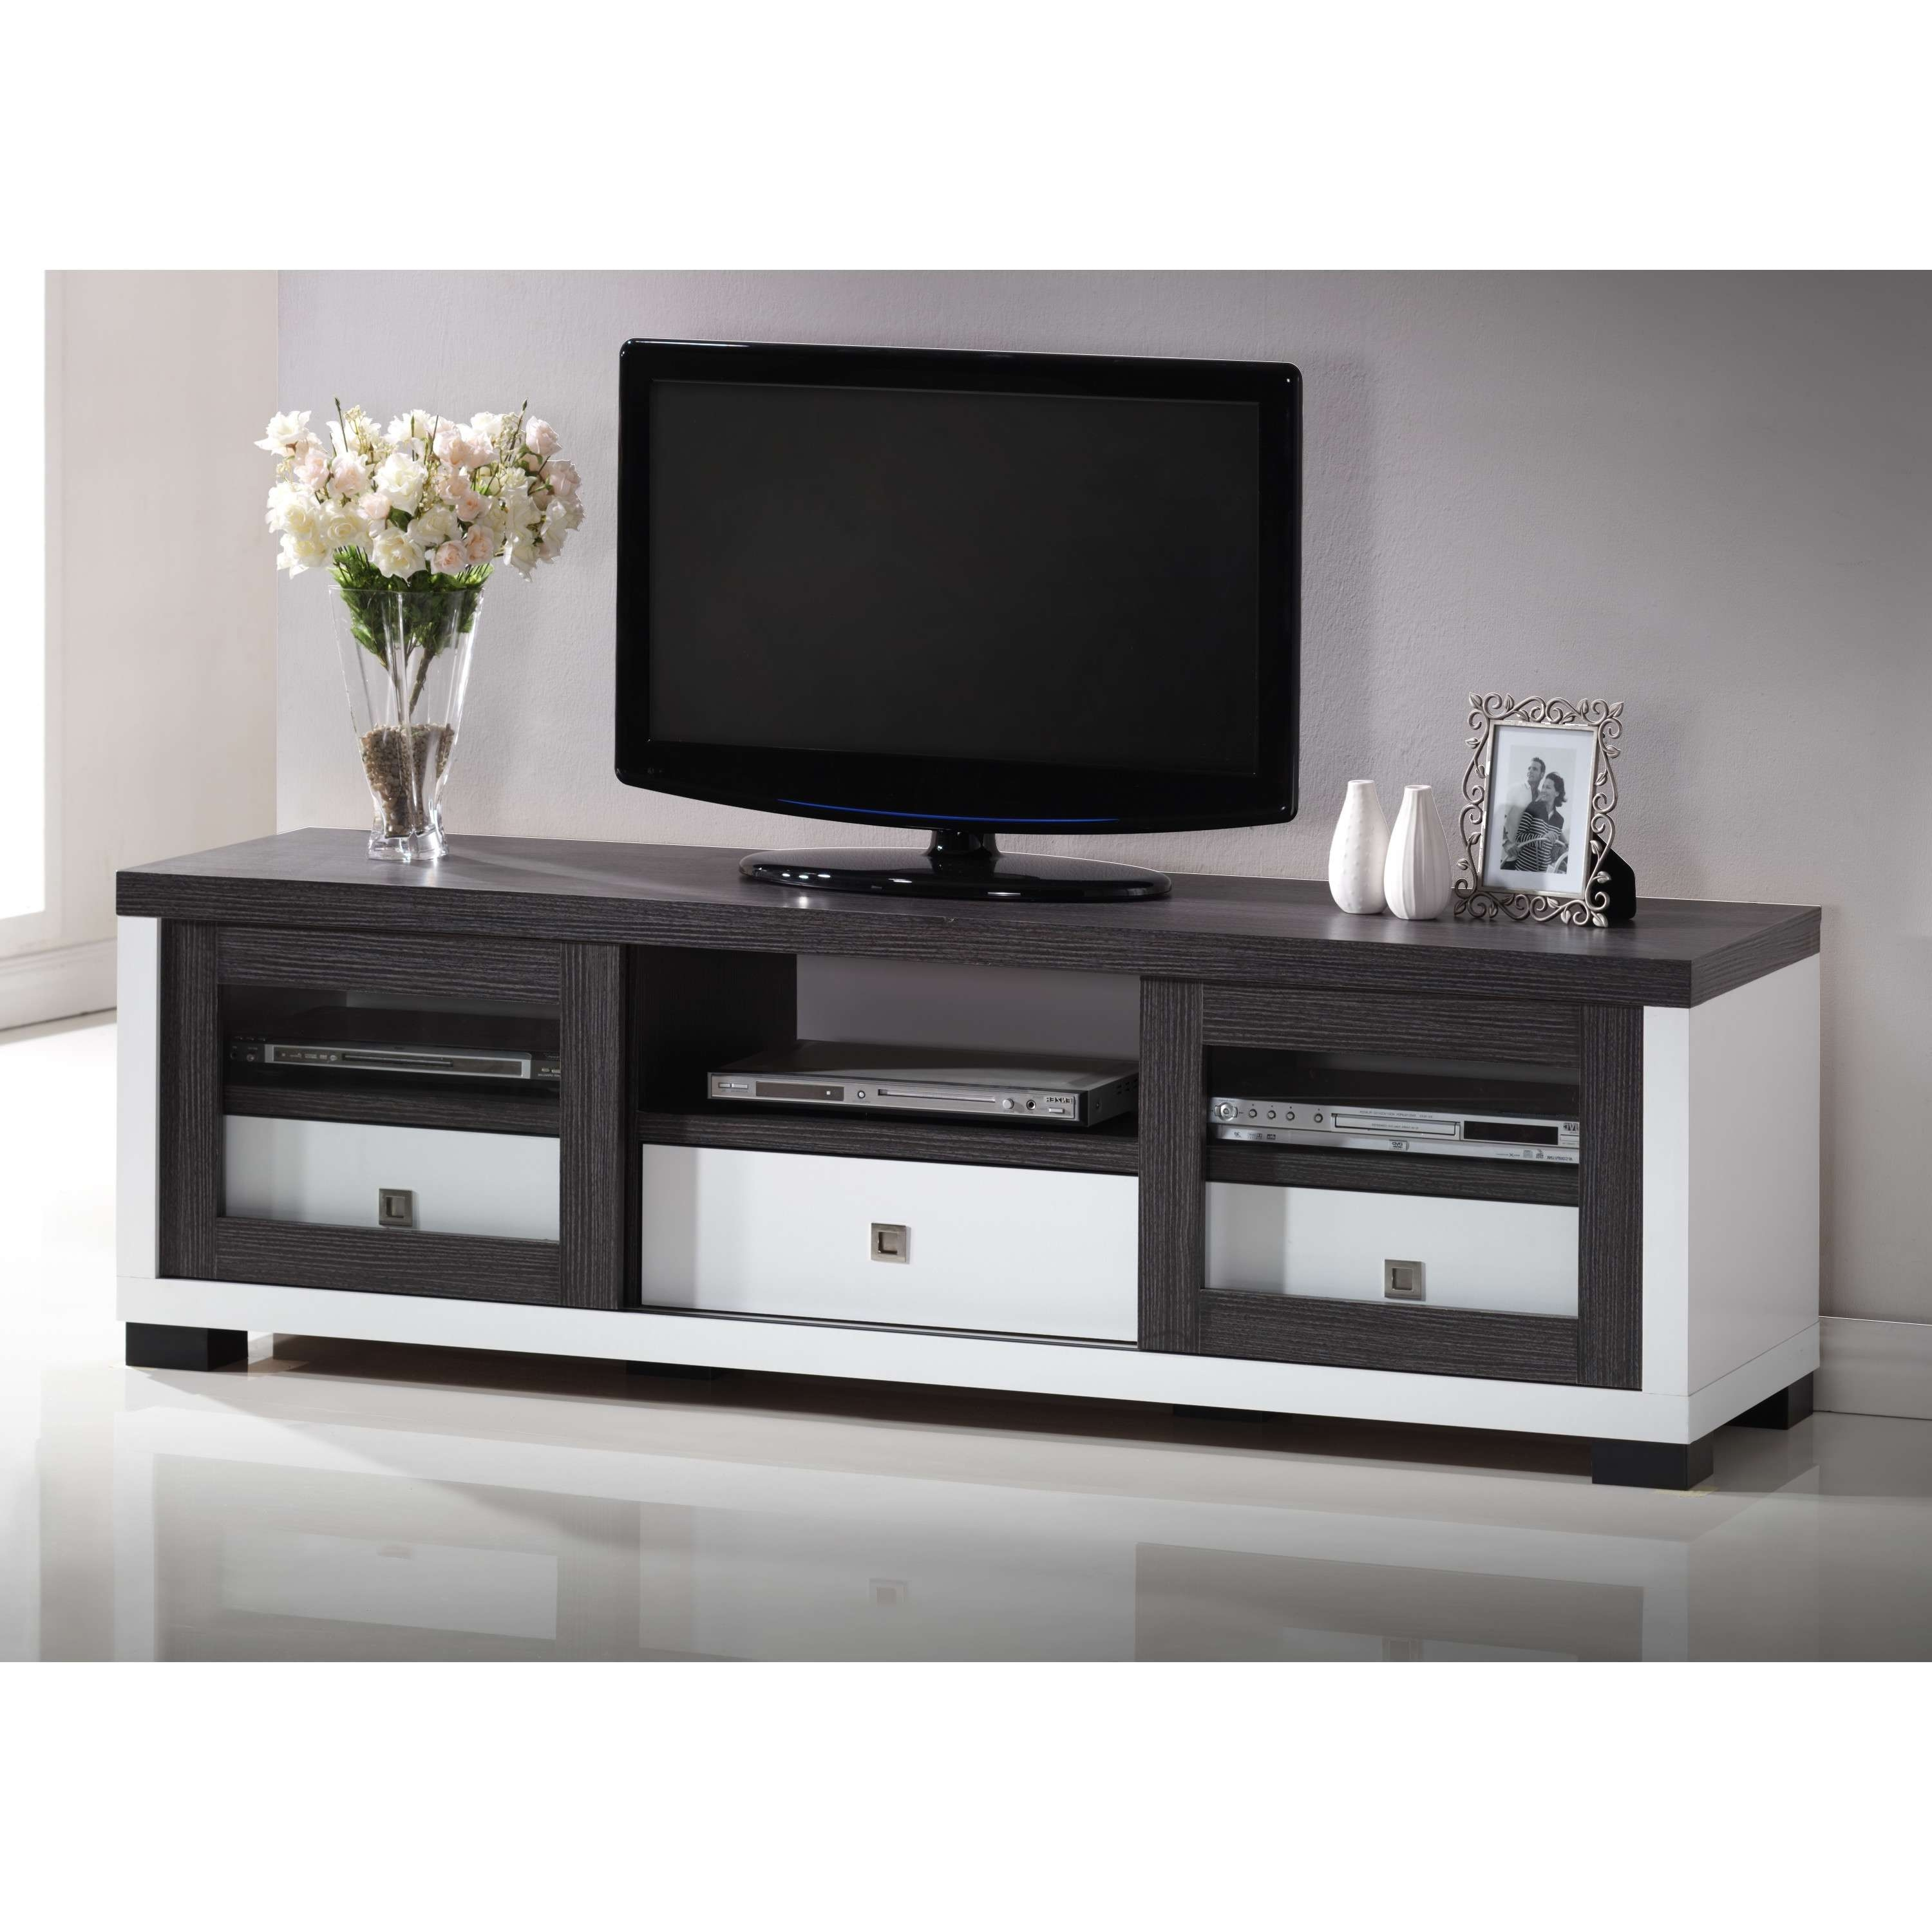 White Tv Cabinet With Glass Doors Images – Doors Design Ideas Pertaining To Long White Tv Cabinets (View 9 of 20)